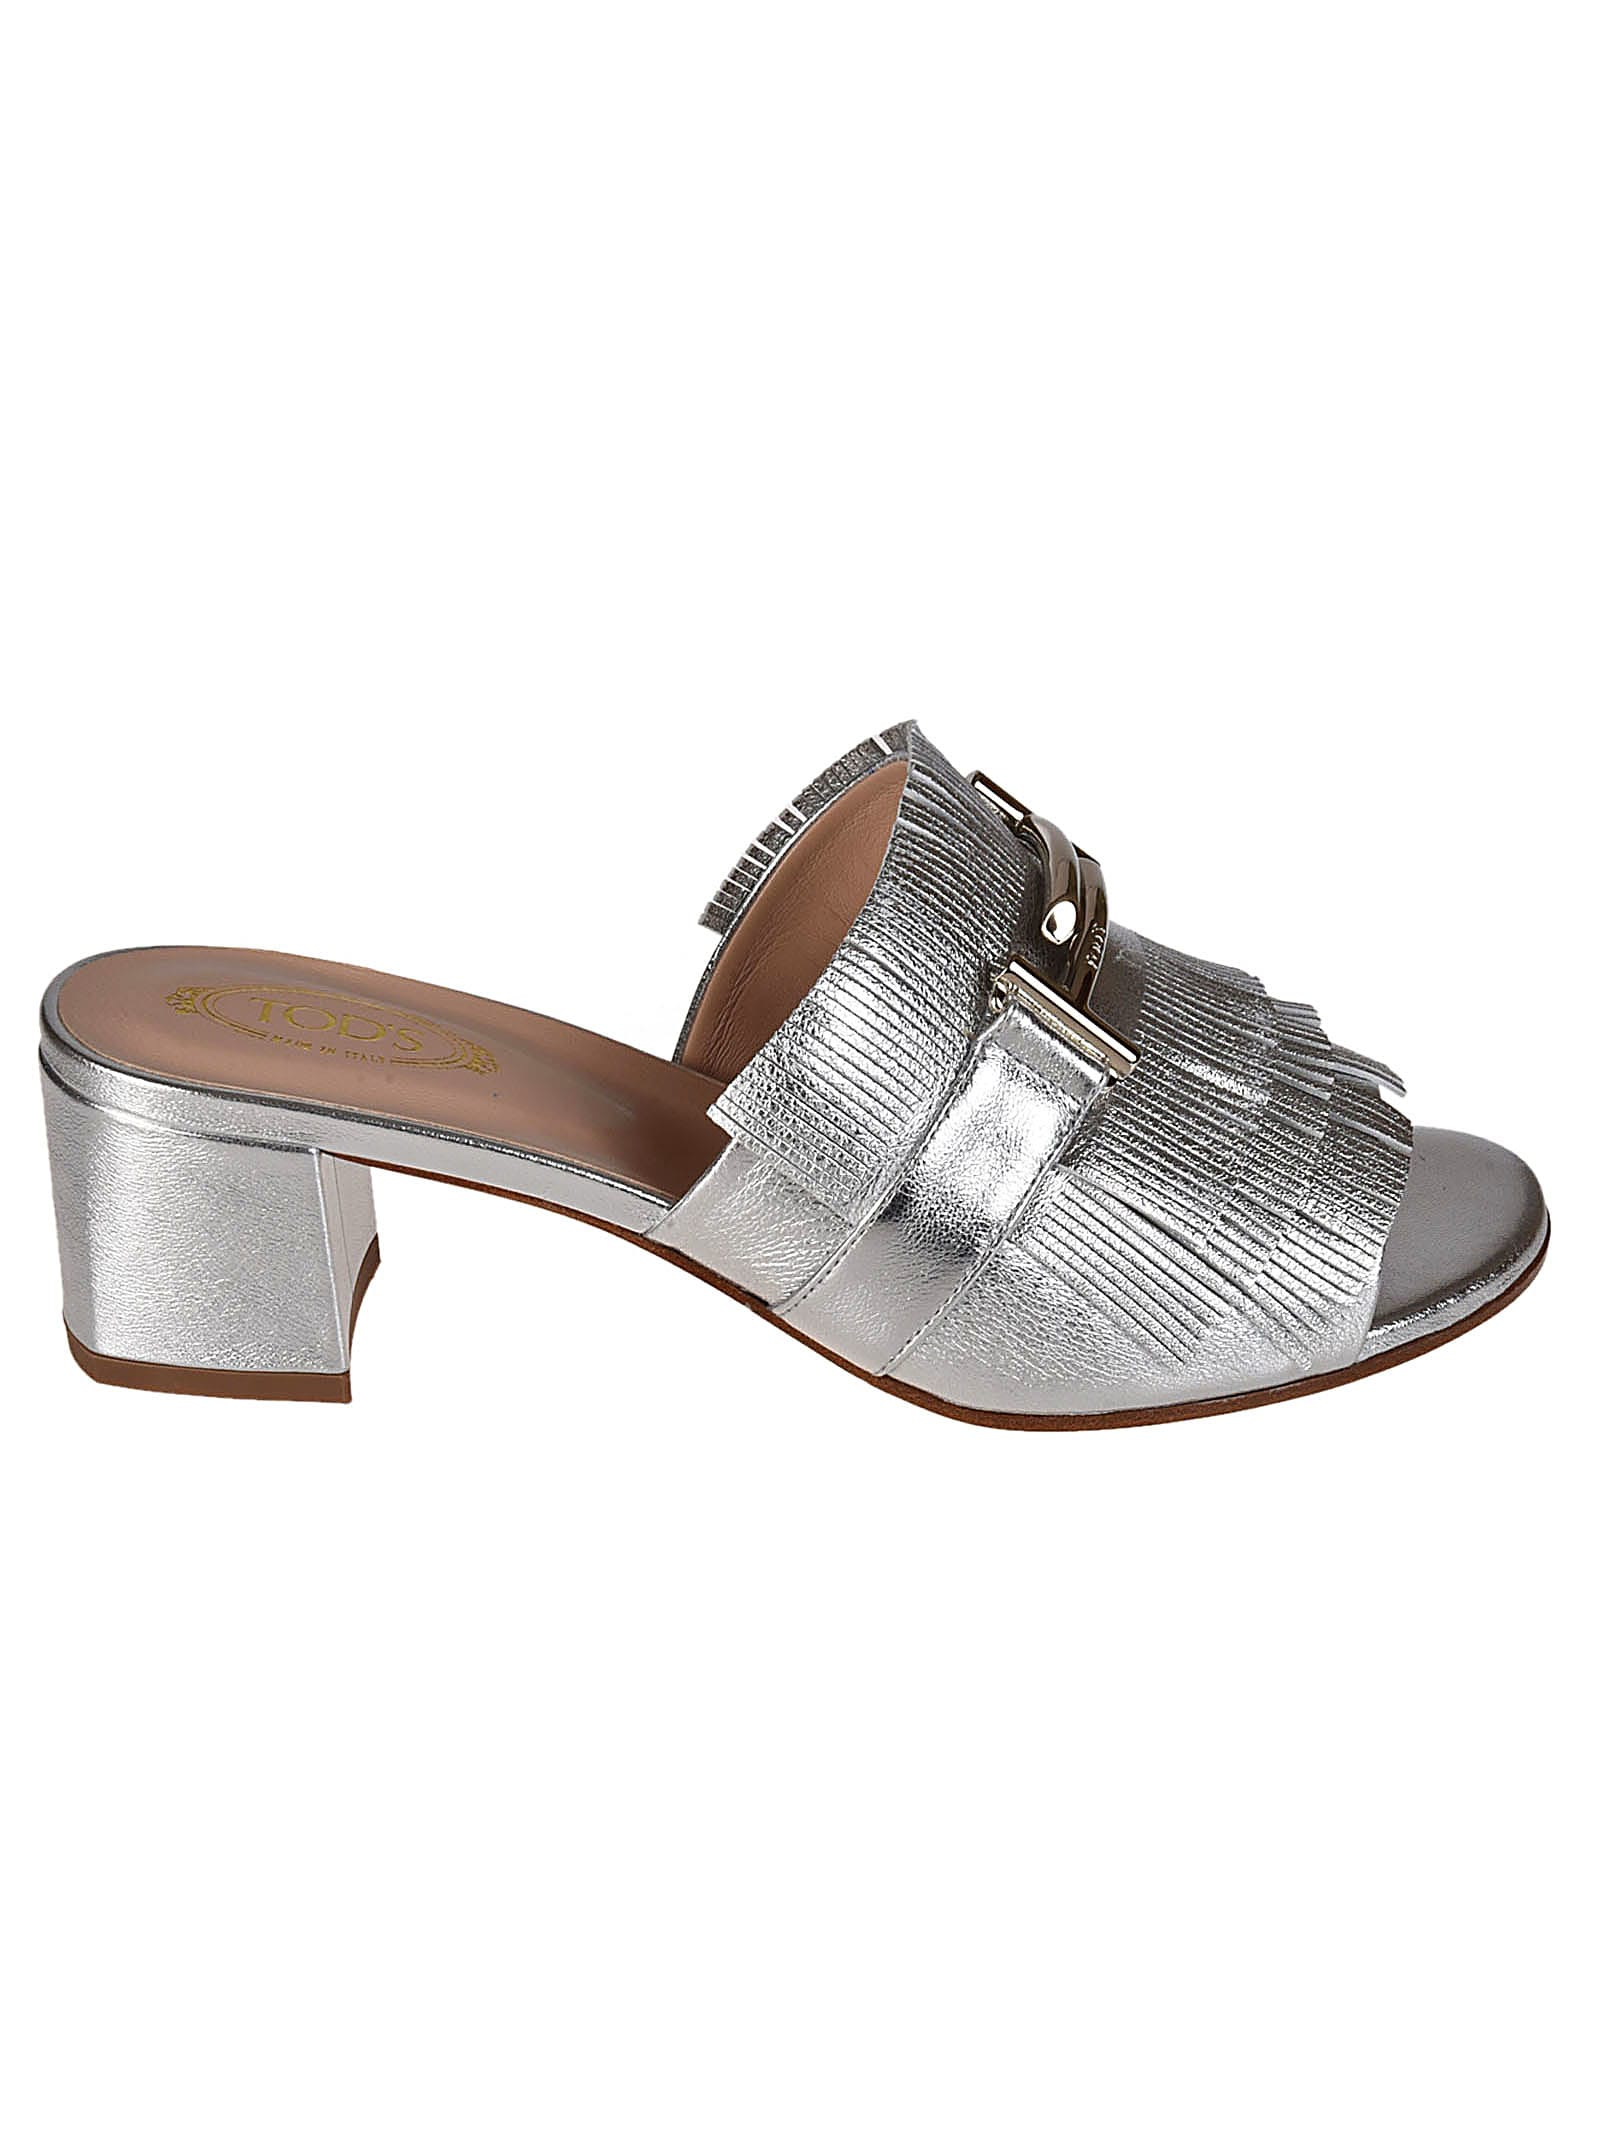 Buy Tods Sandals online, shop Tods shoes with free shipping